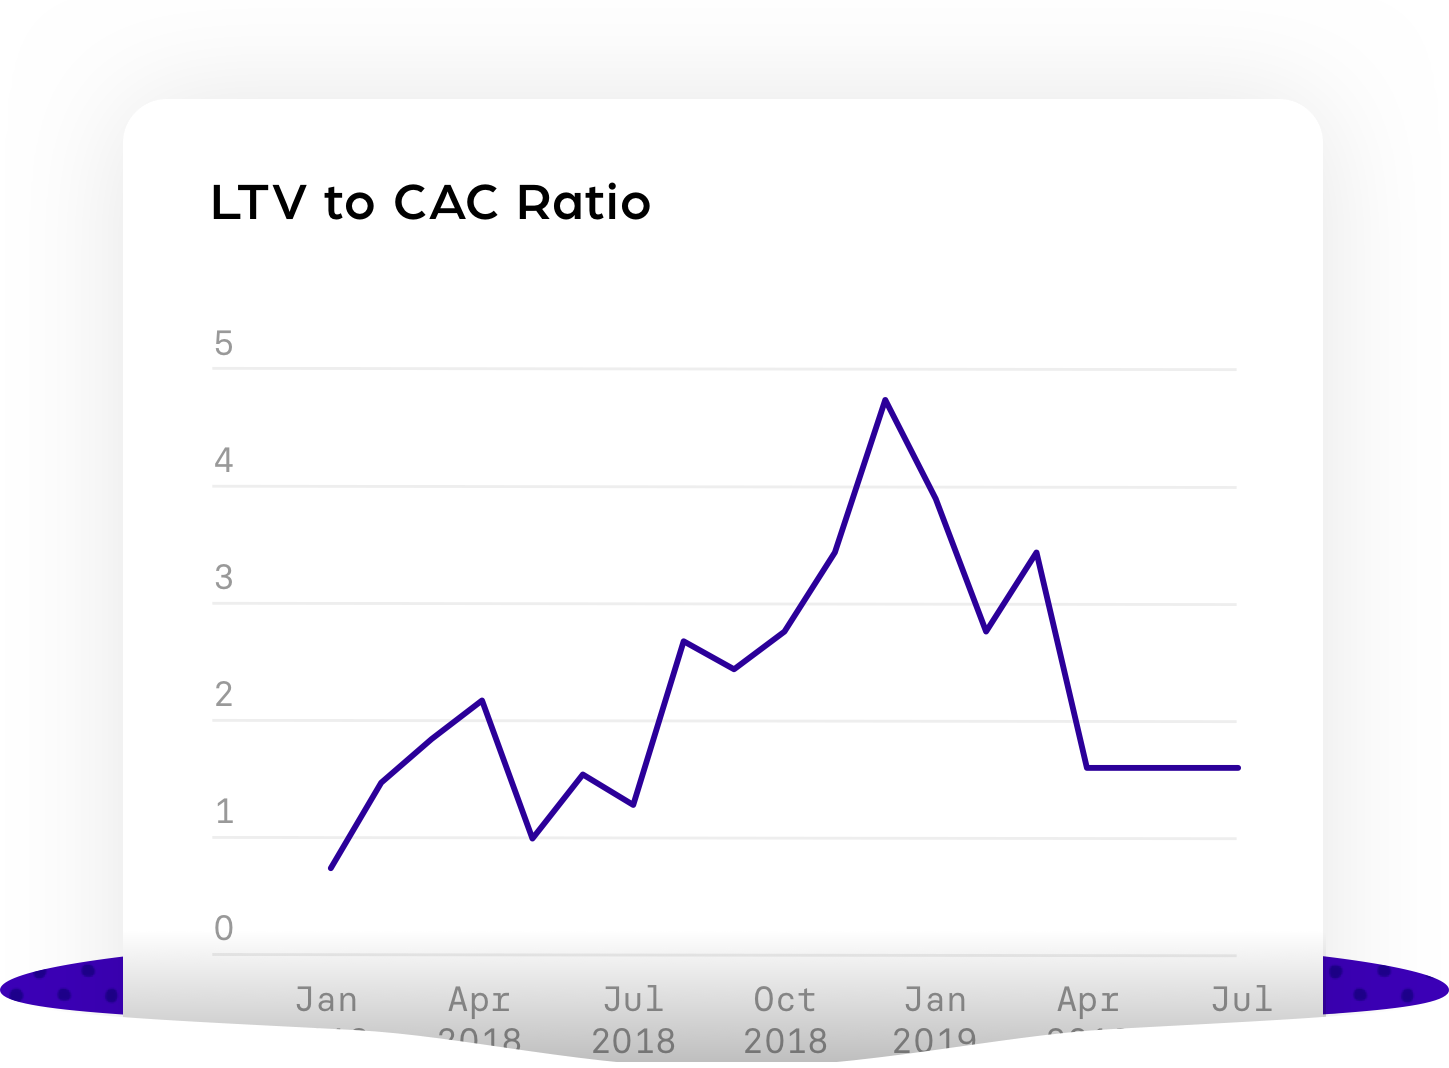 LTV to CAC Ratio@3x